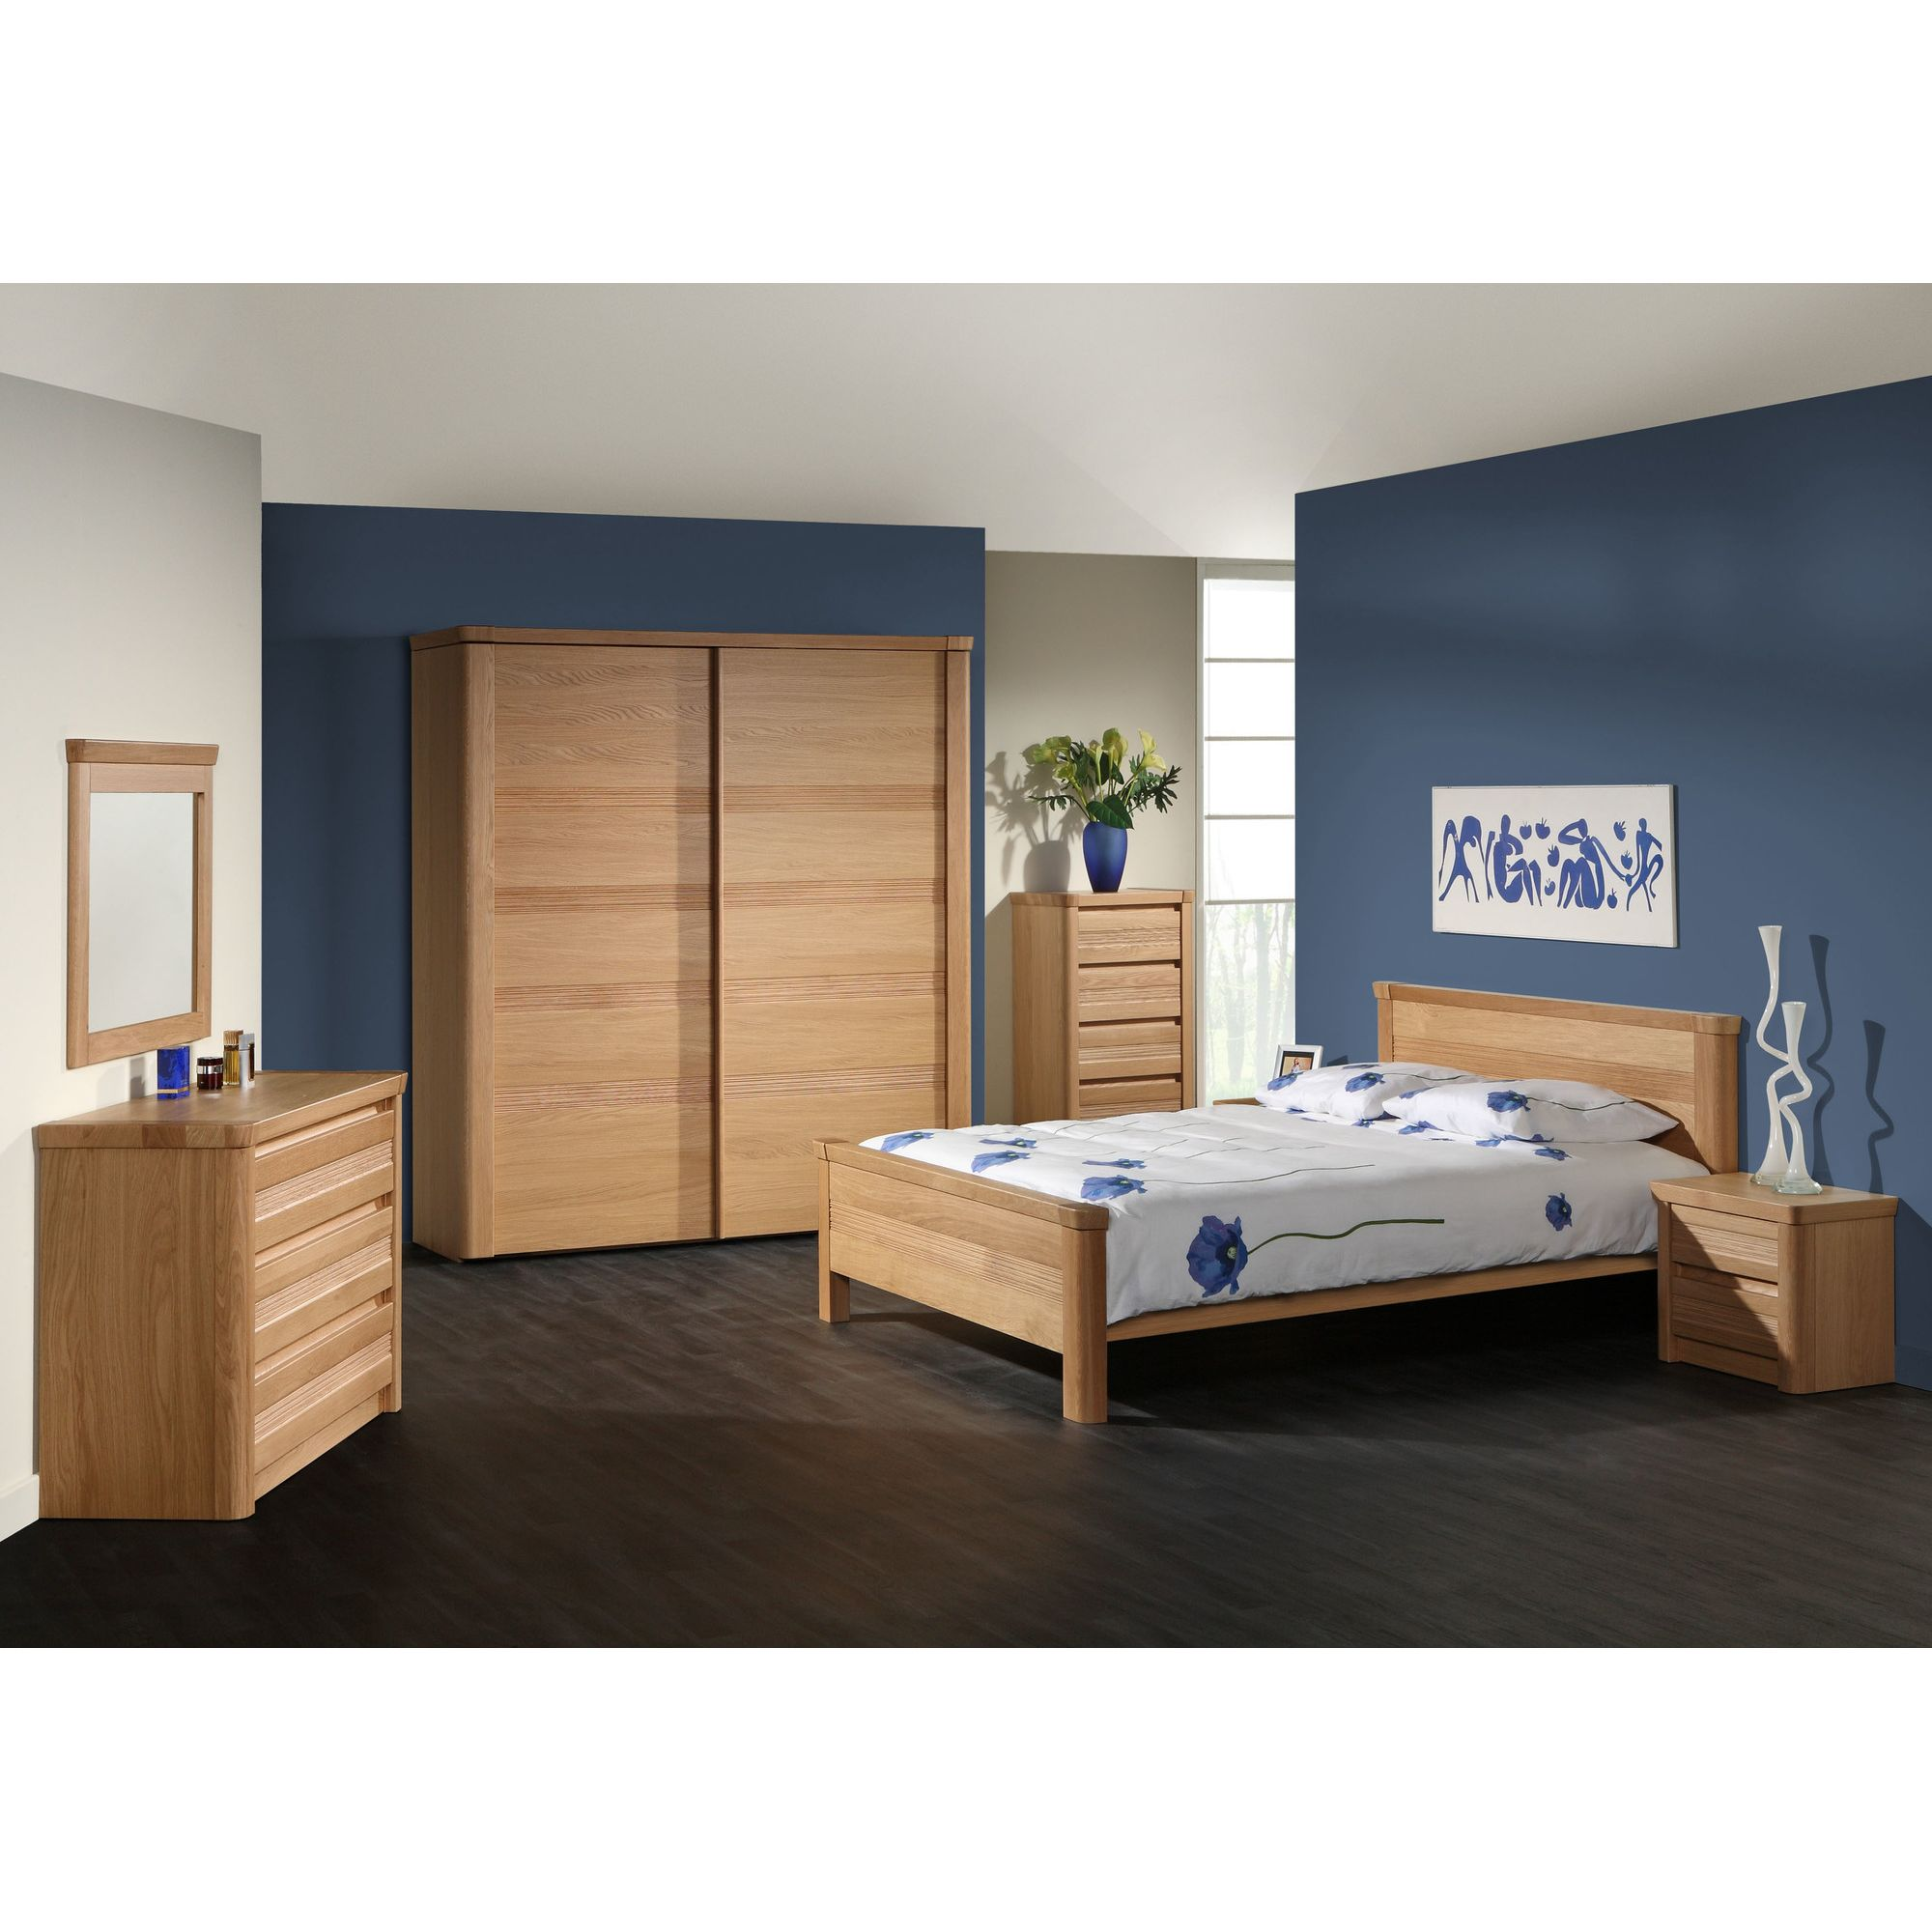 Sleepline Mundo Narrow 3 Drawer Chest - Grey Mat Lacquered at Tesco Direct